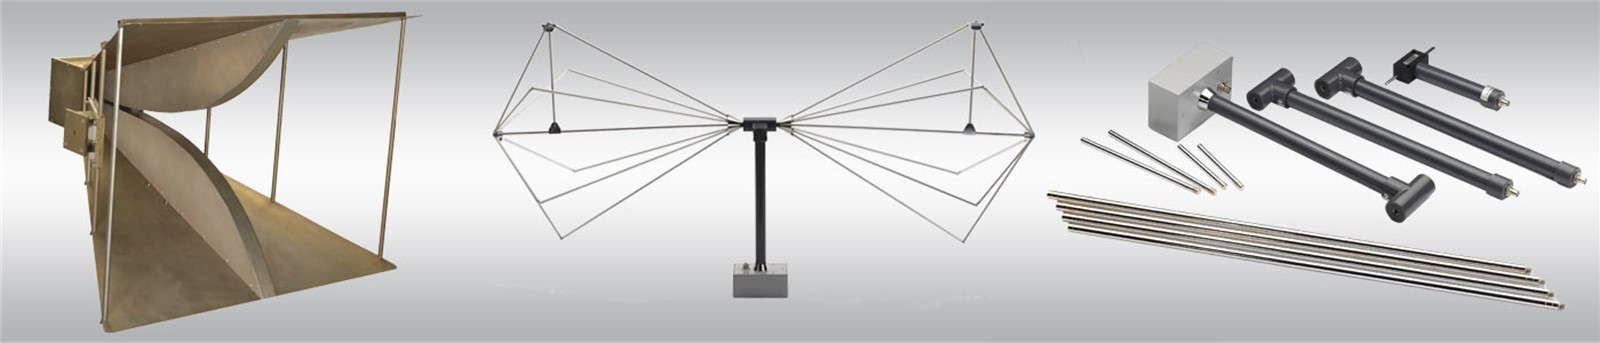 Antennas - Horn, Dipole, Log Periodic, And More!